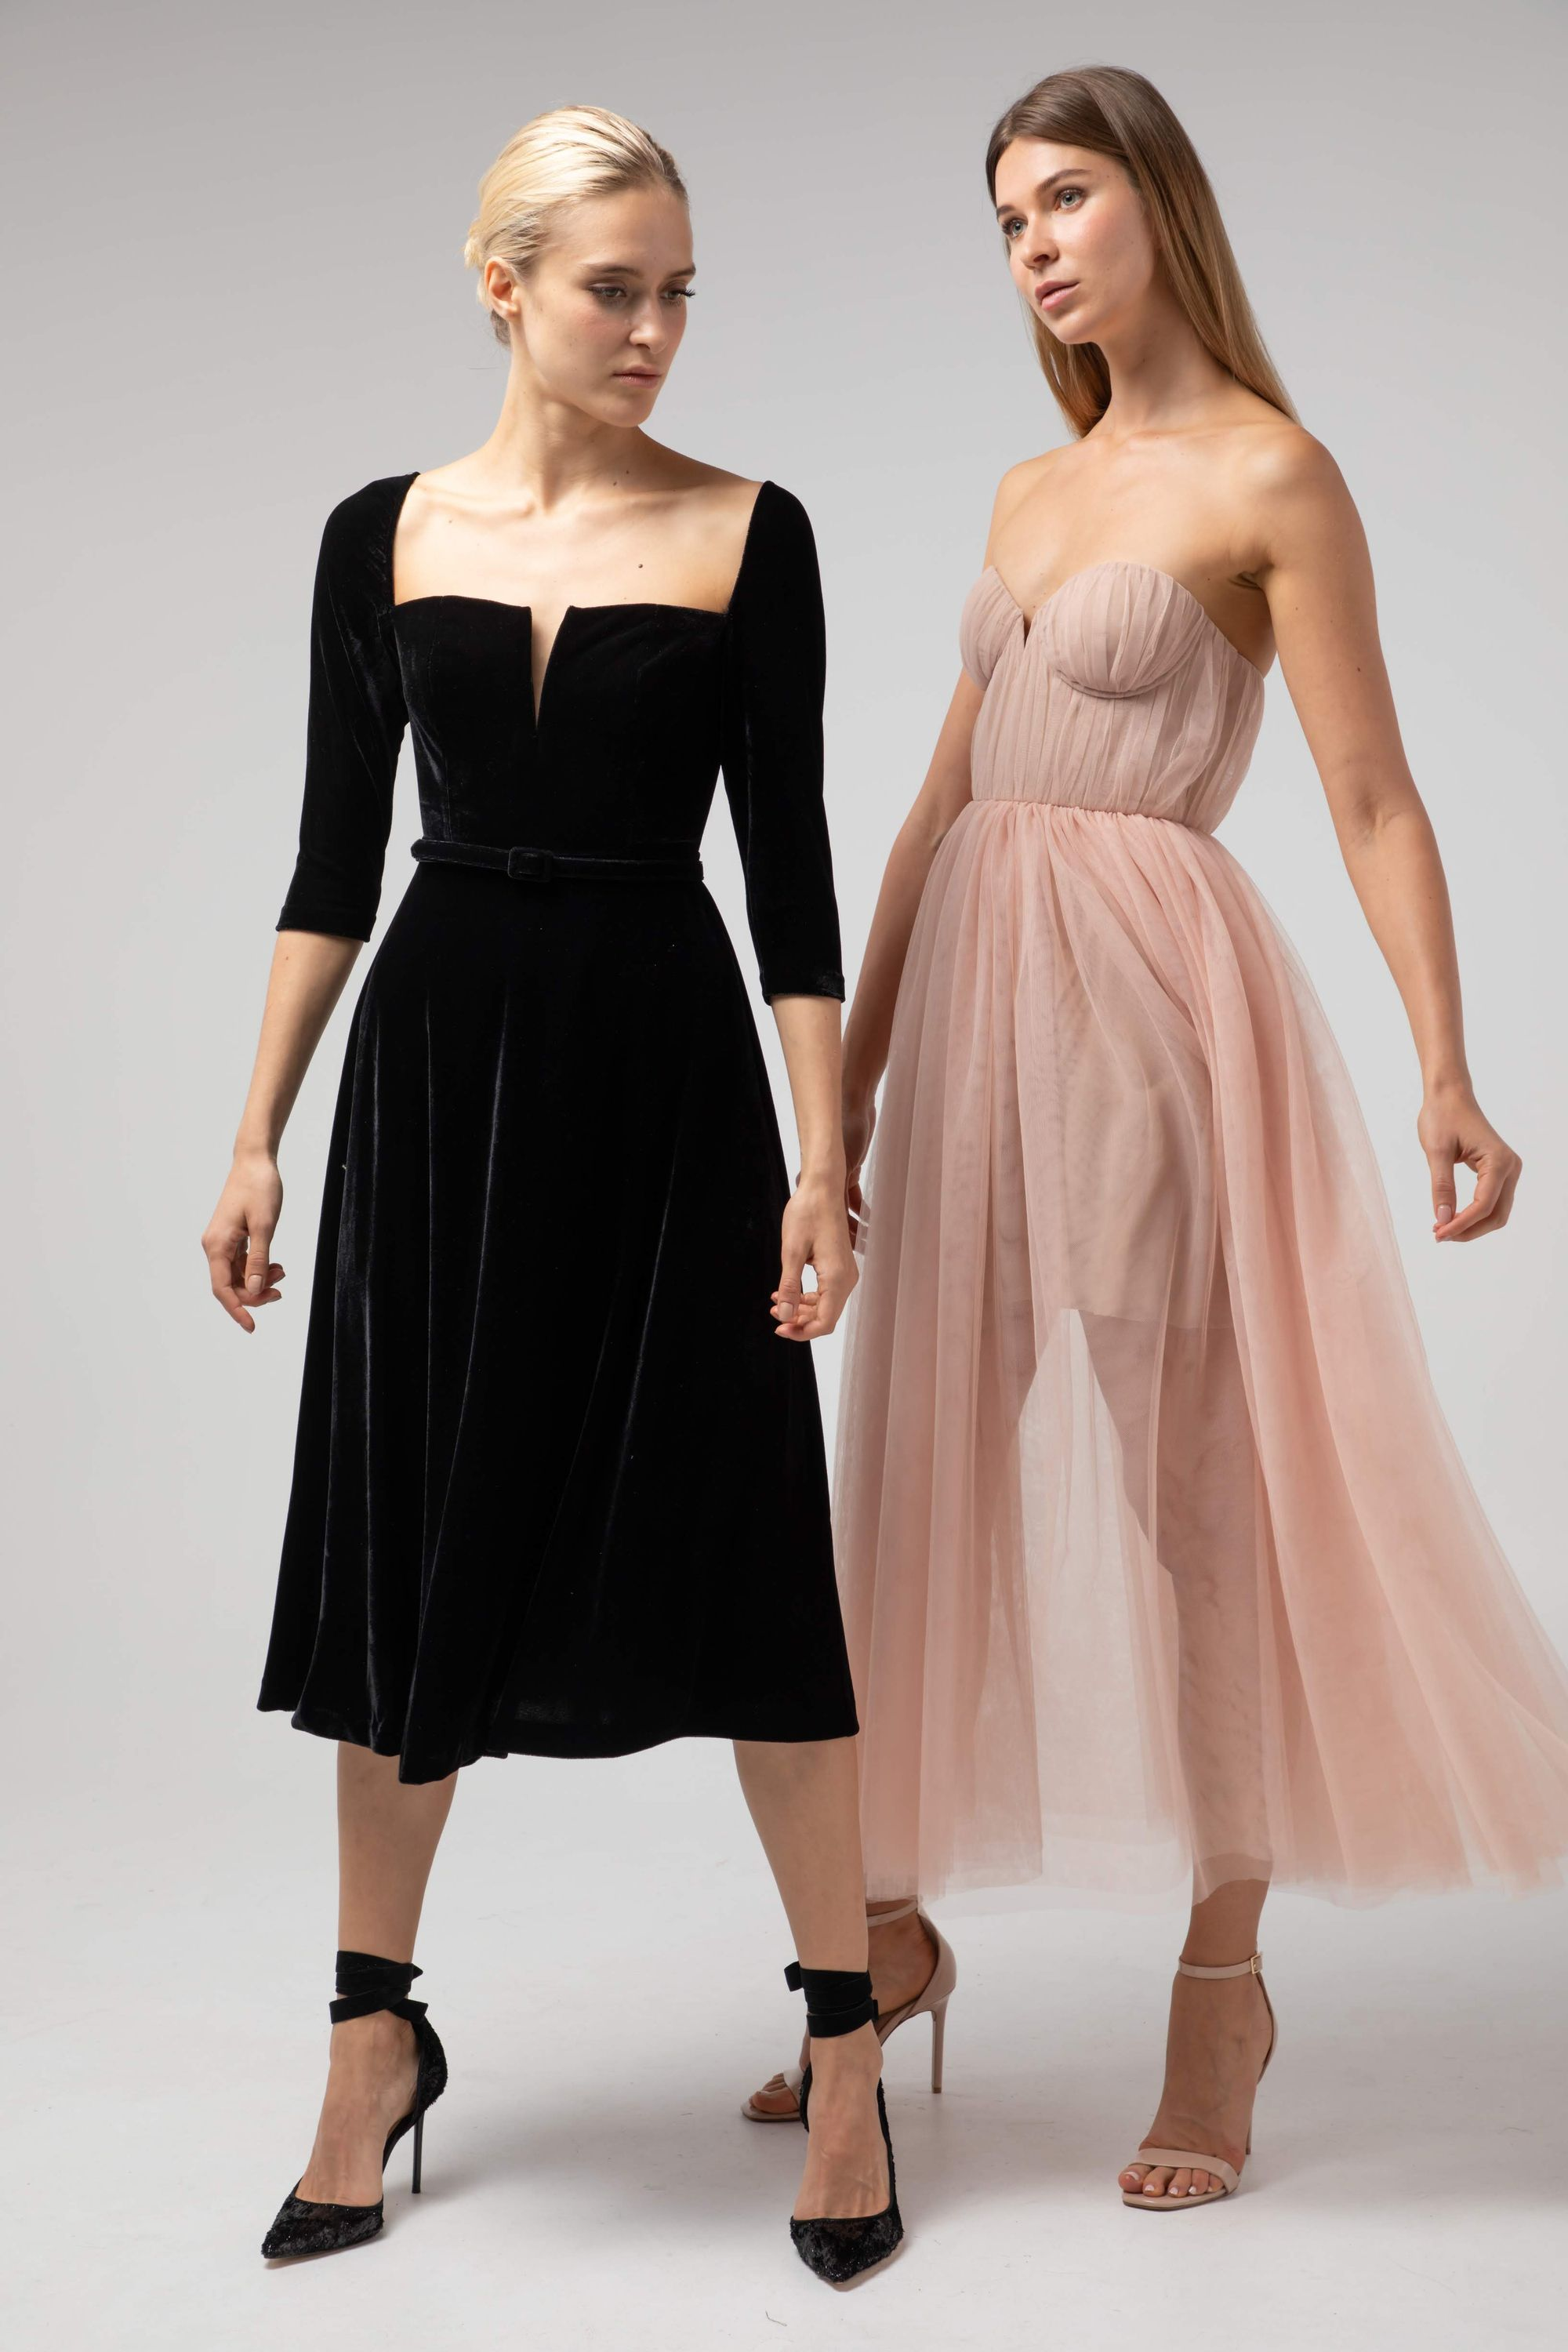 Fall Wedding Guest Dresses For Formal Black Tie Wedding Dress Code Fall Wedding Guest Dress Black Tie Wedding Guest Dress Winter Wedding Guest Dress [ 3000 x 2000 Pixel ]